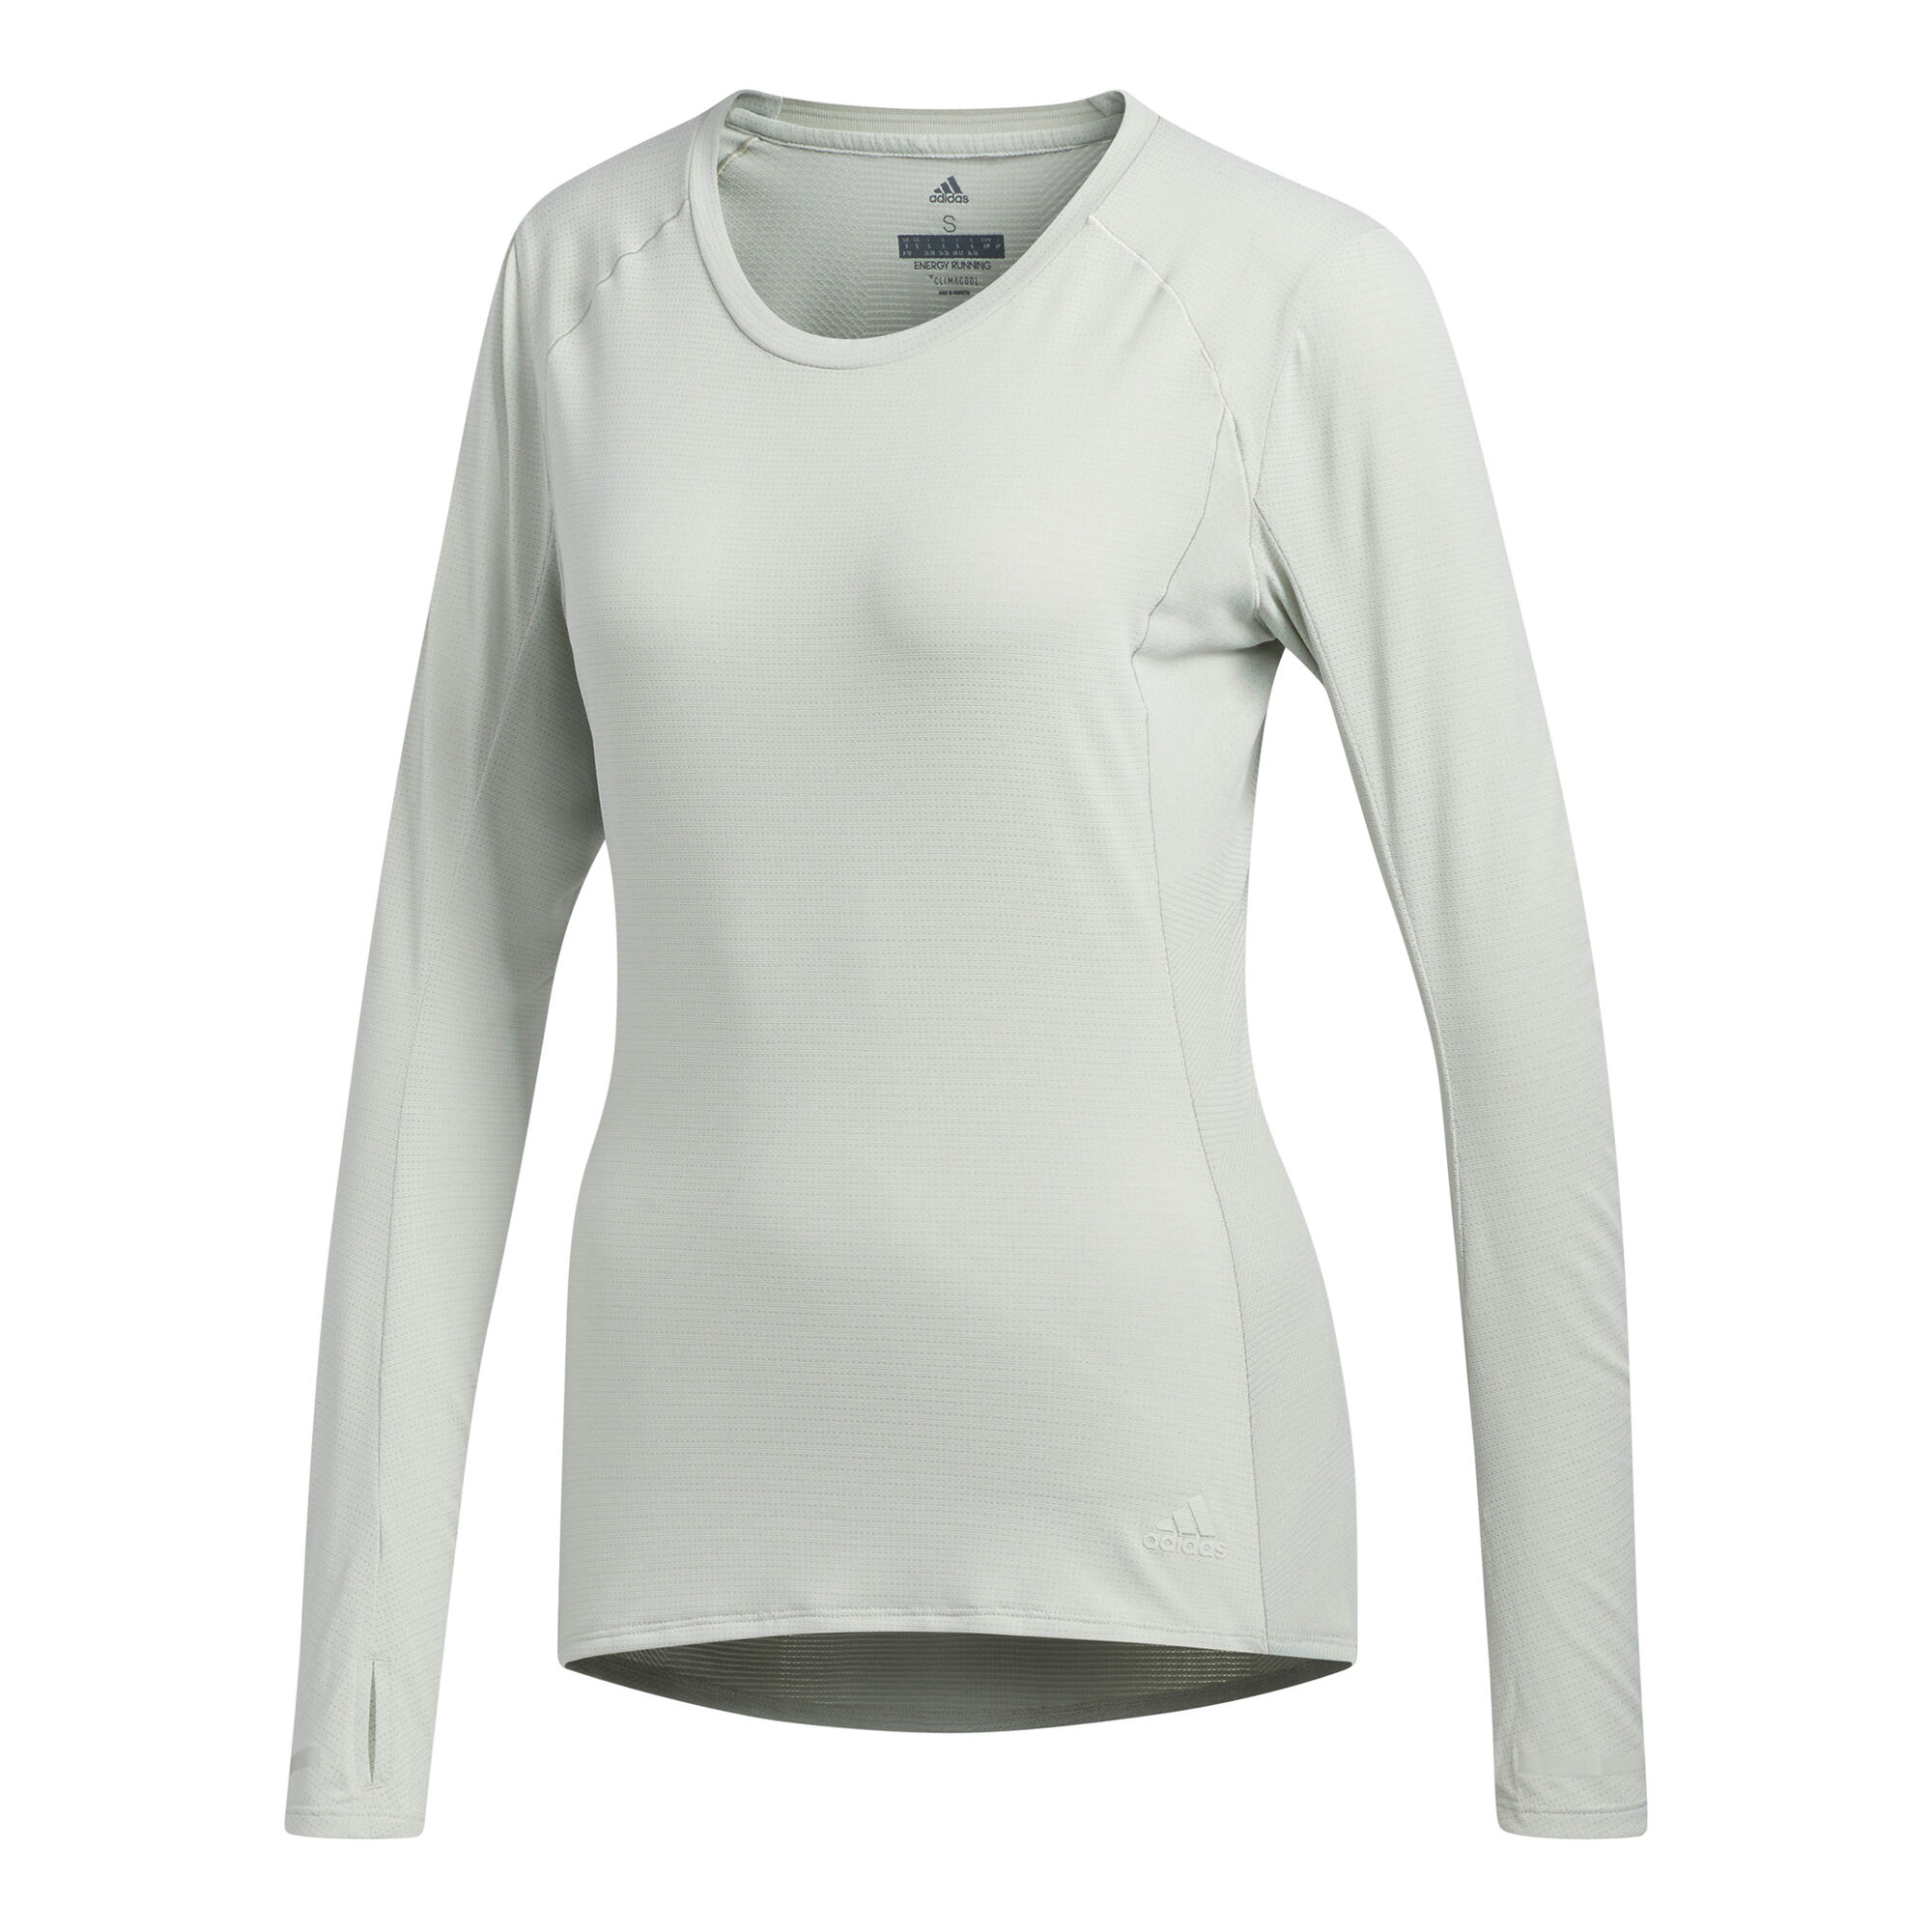 9c6d458e buy adidas Supernova Long Sleeve Women - Lightgrey, Grey online ...